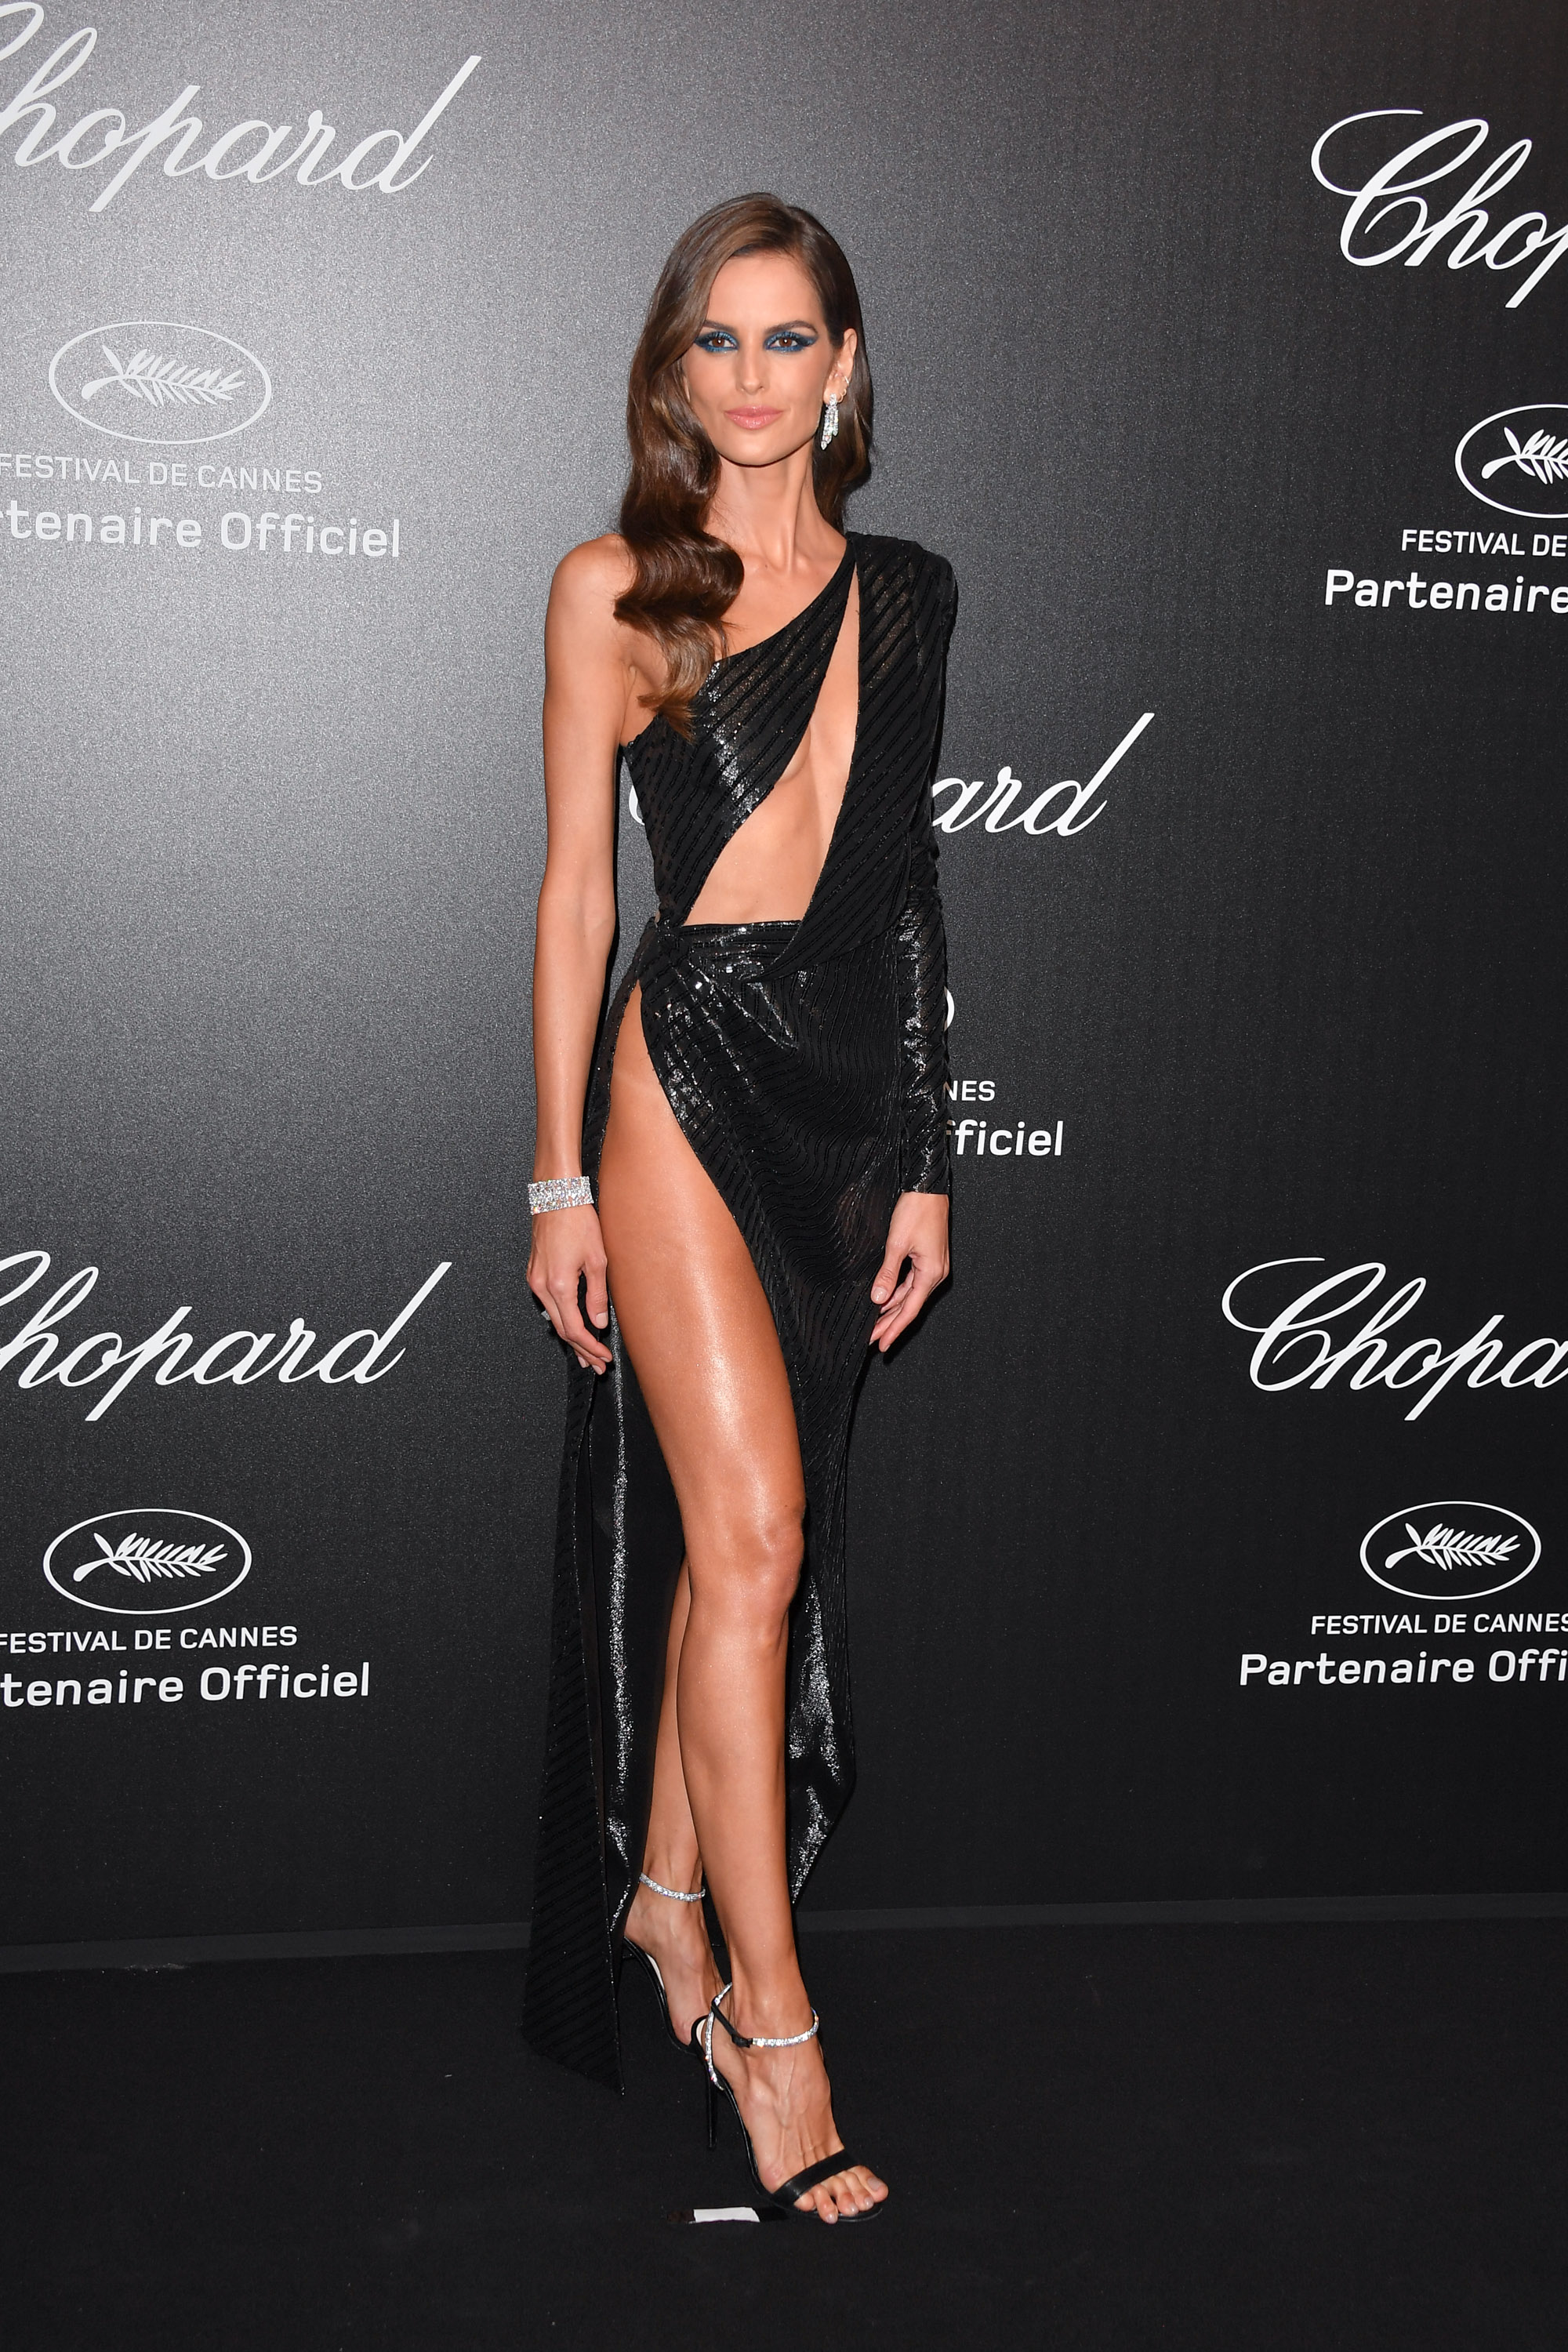 Izabel Goulart during the 72nd annual Cannes Film Festival